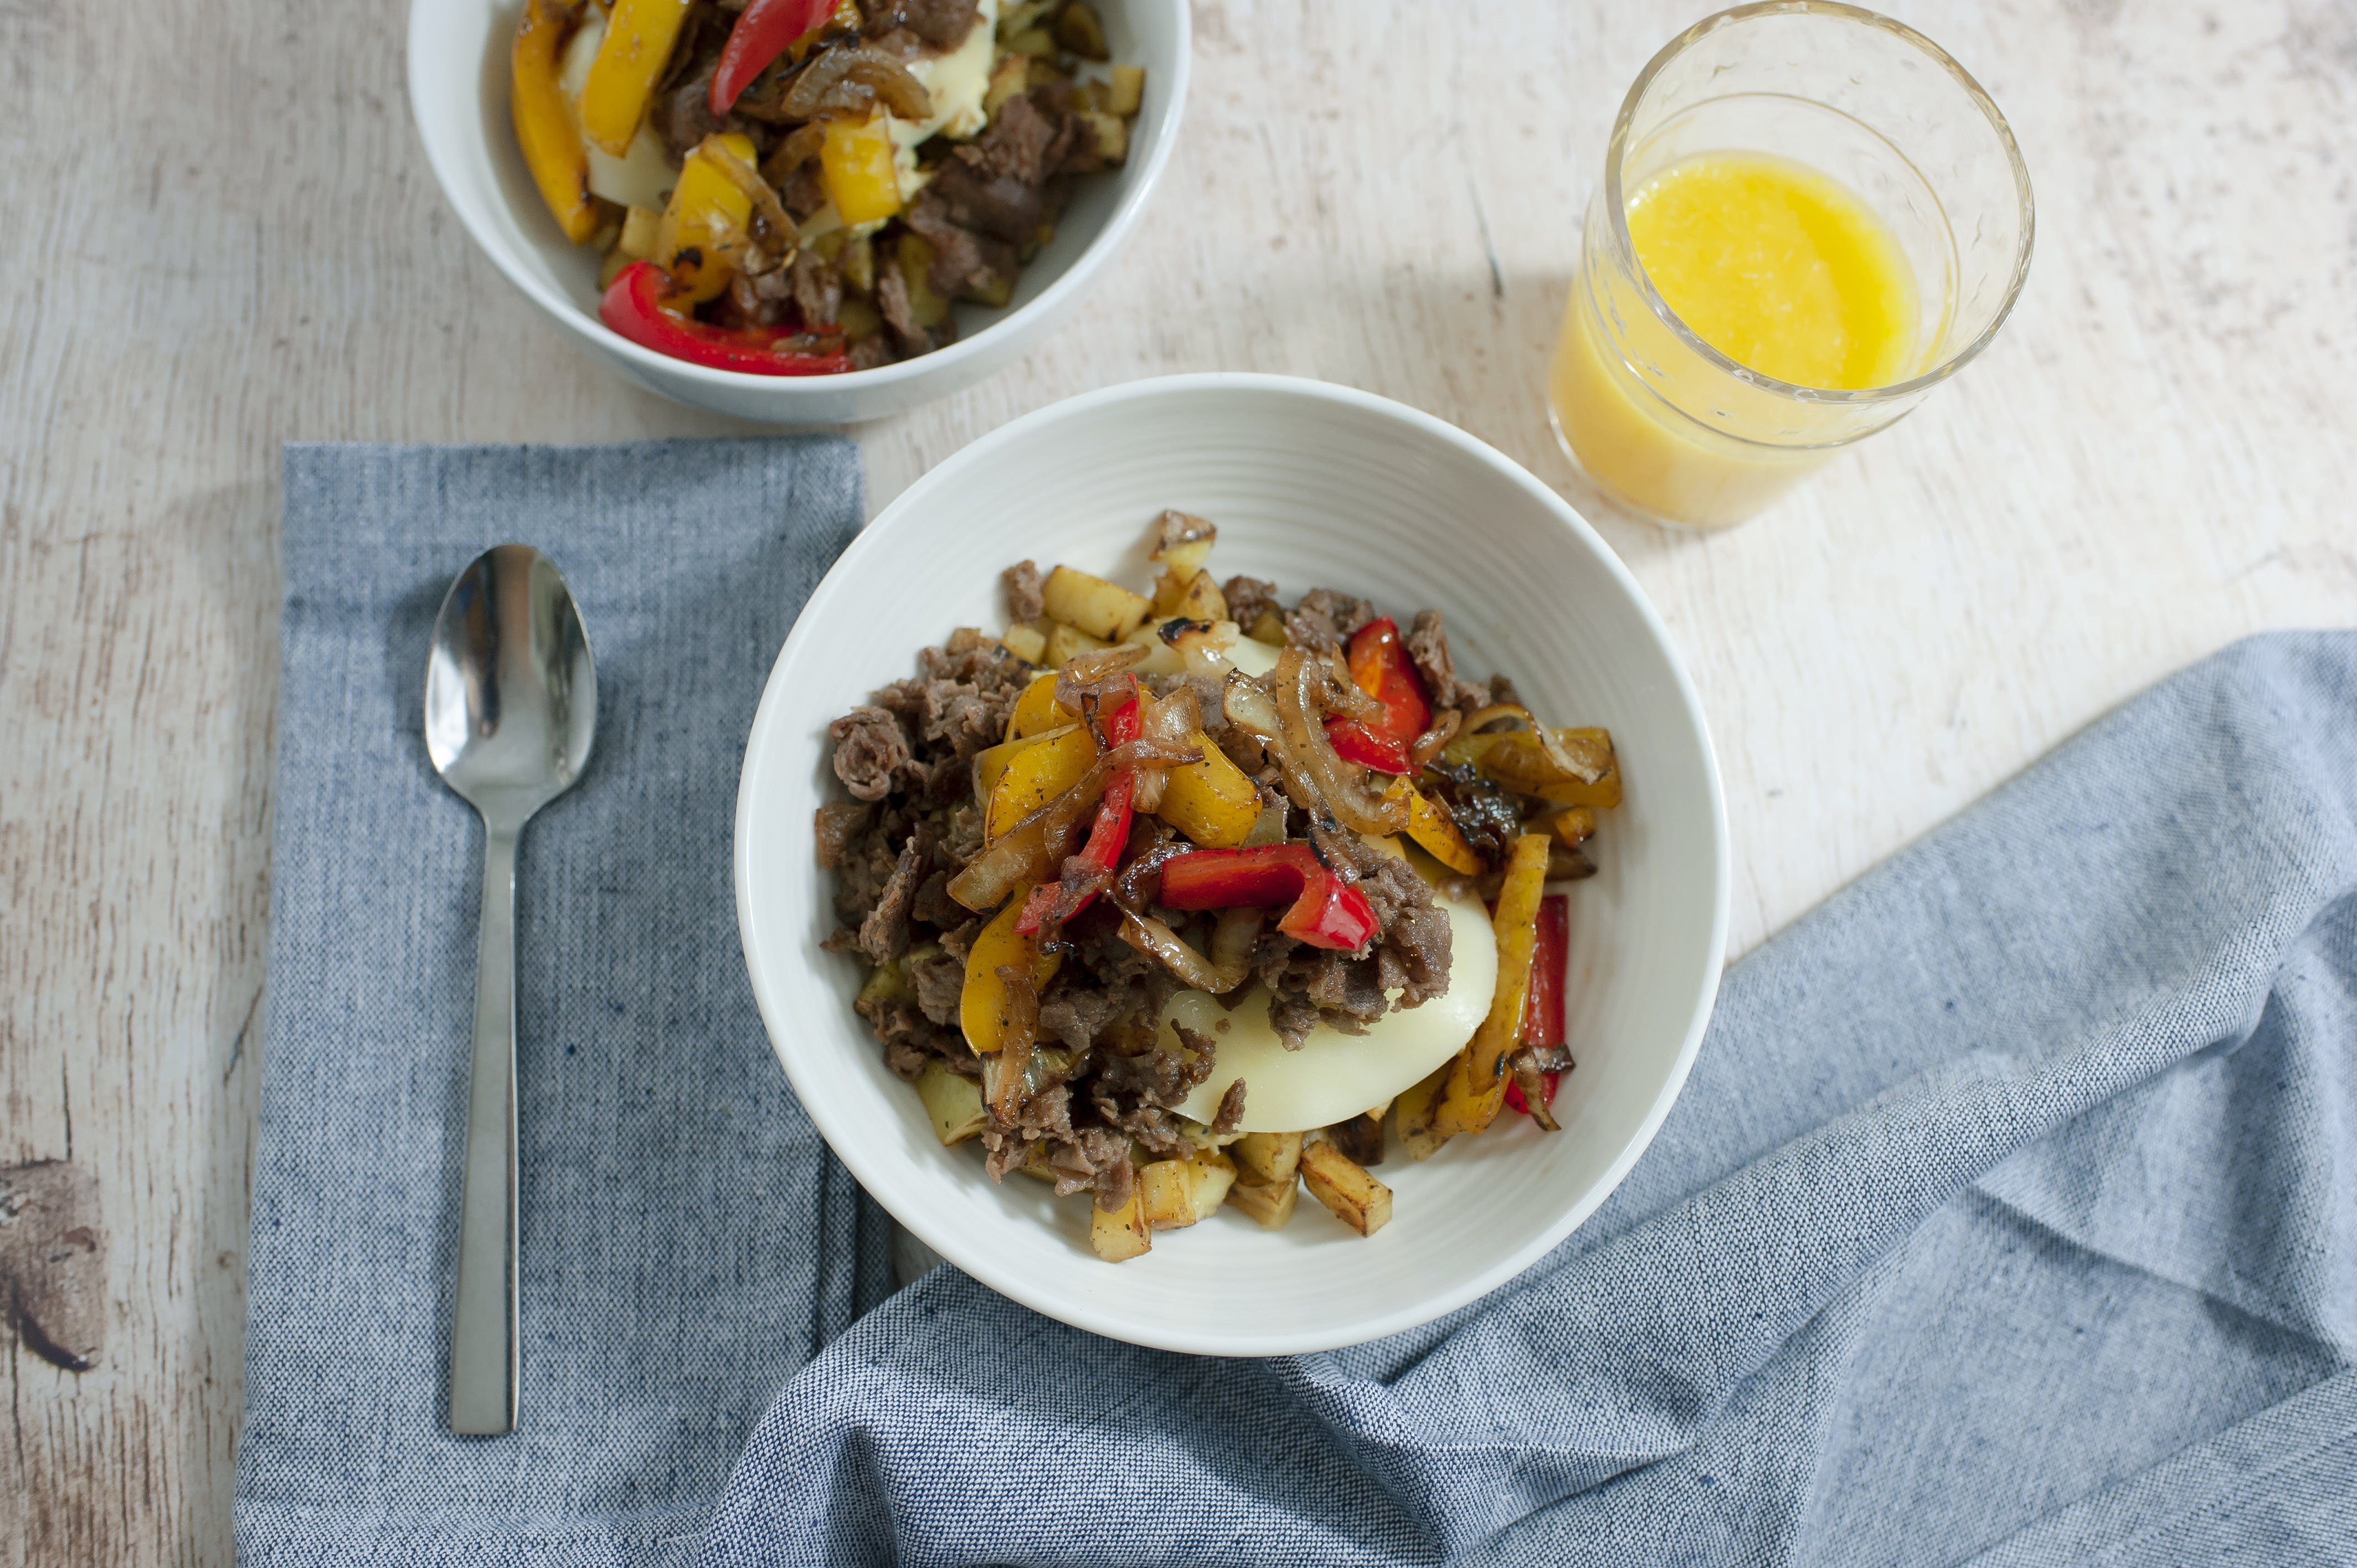 Cheesesteak Egg Scramble Bowl